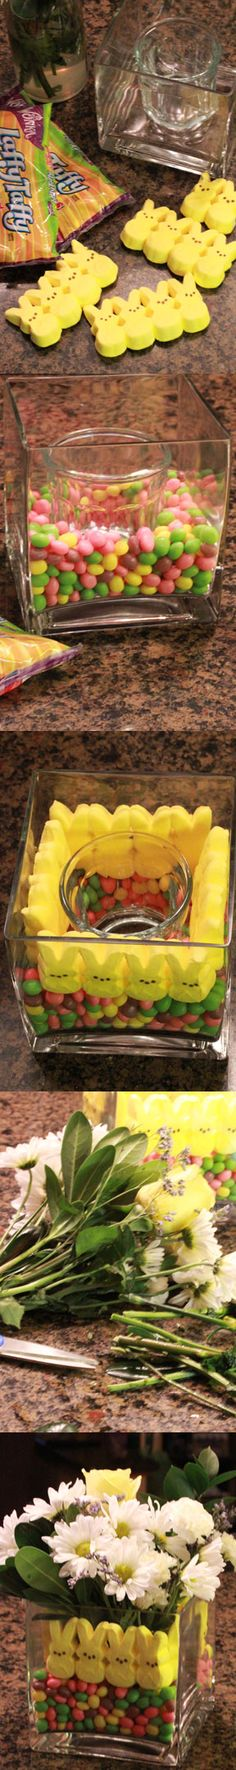 How to create a Peeps centerpiece #DIY #Easter #Peeps @Brittany Horton Horton Horton Long maybe you will get one of these